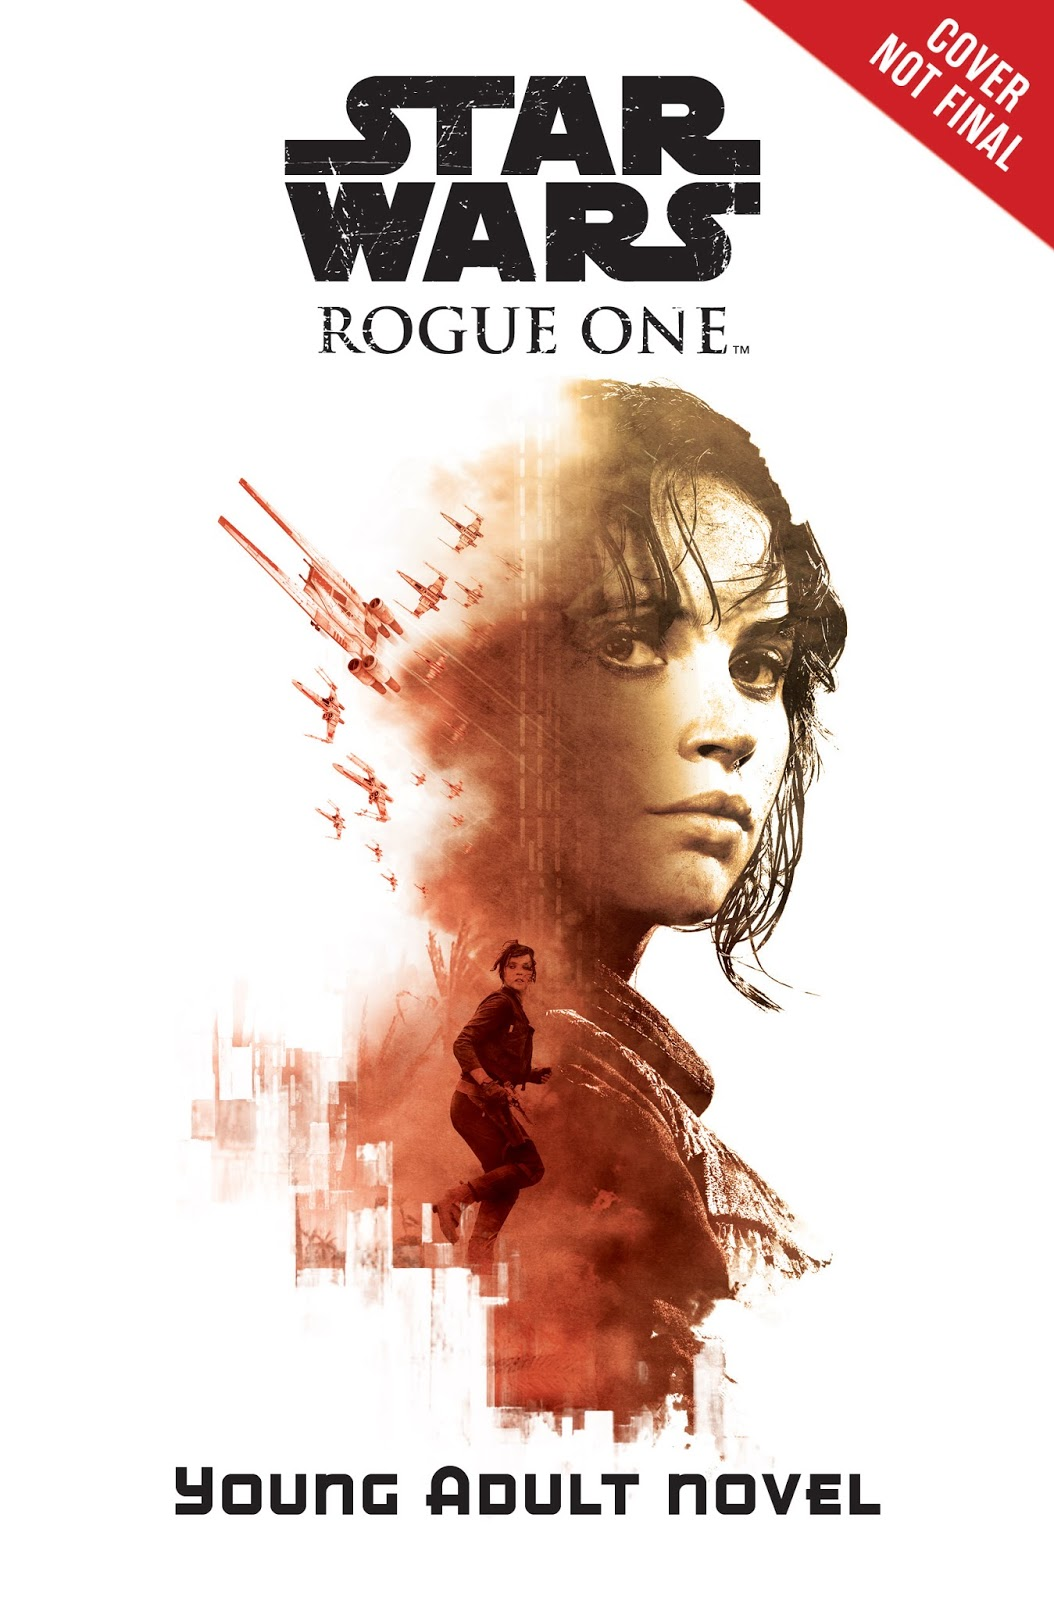 Young Adult Book Covers : A sneak peek at three new rogue one star war story book